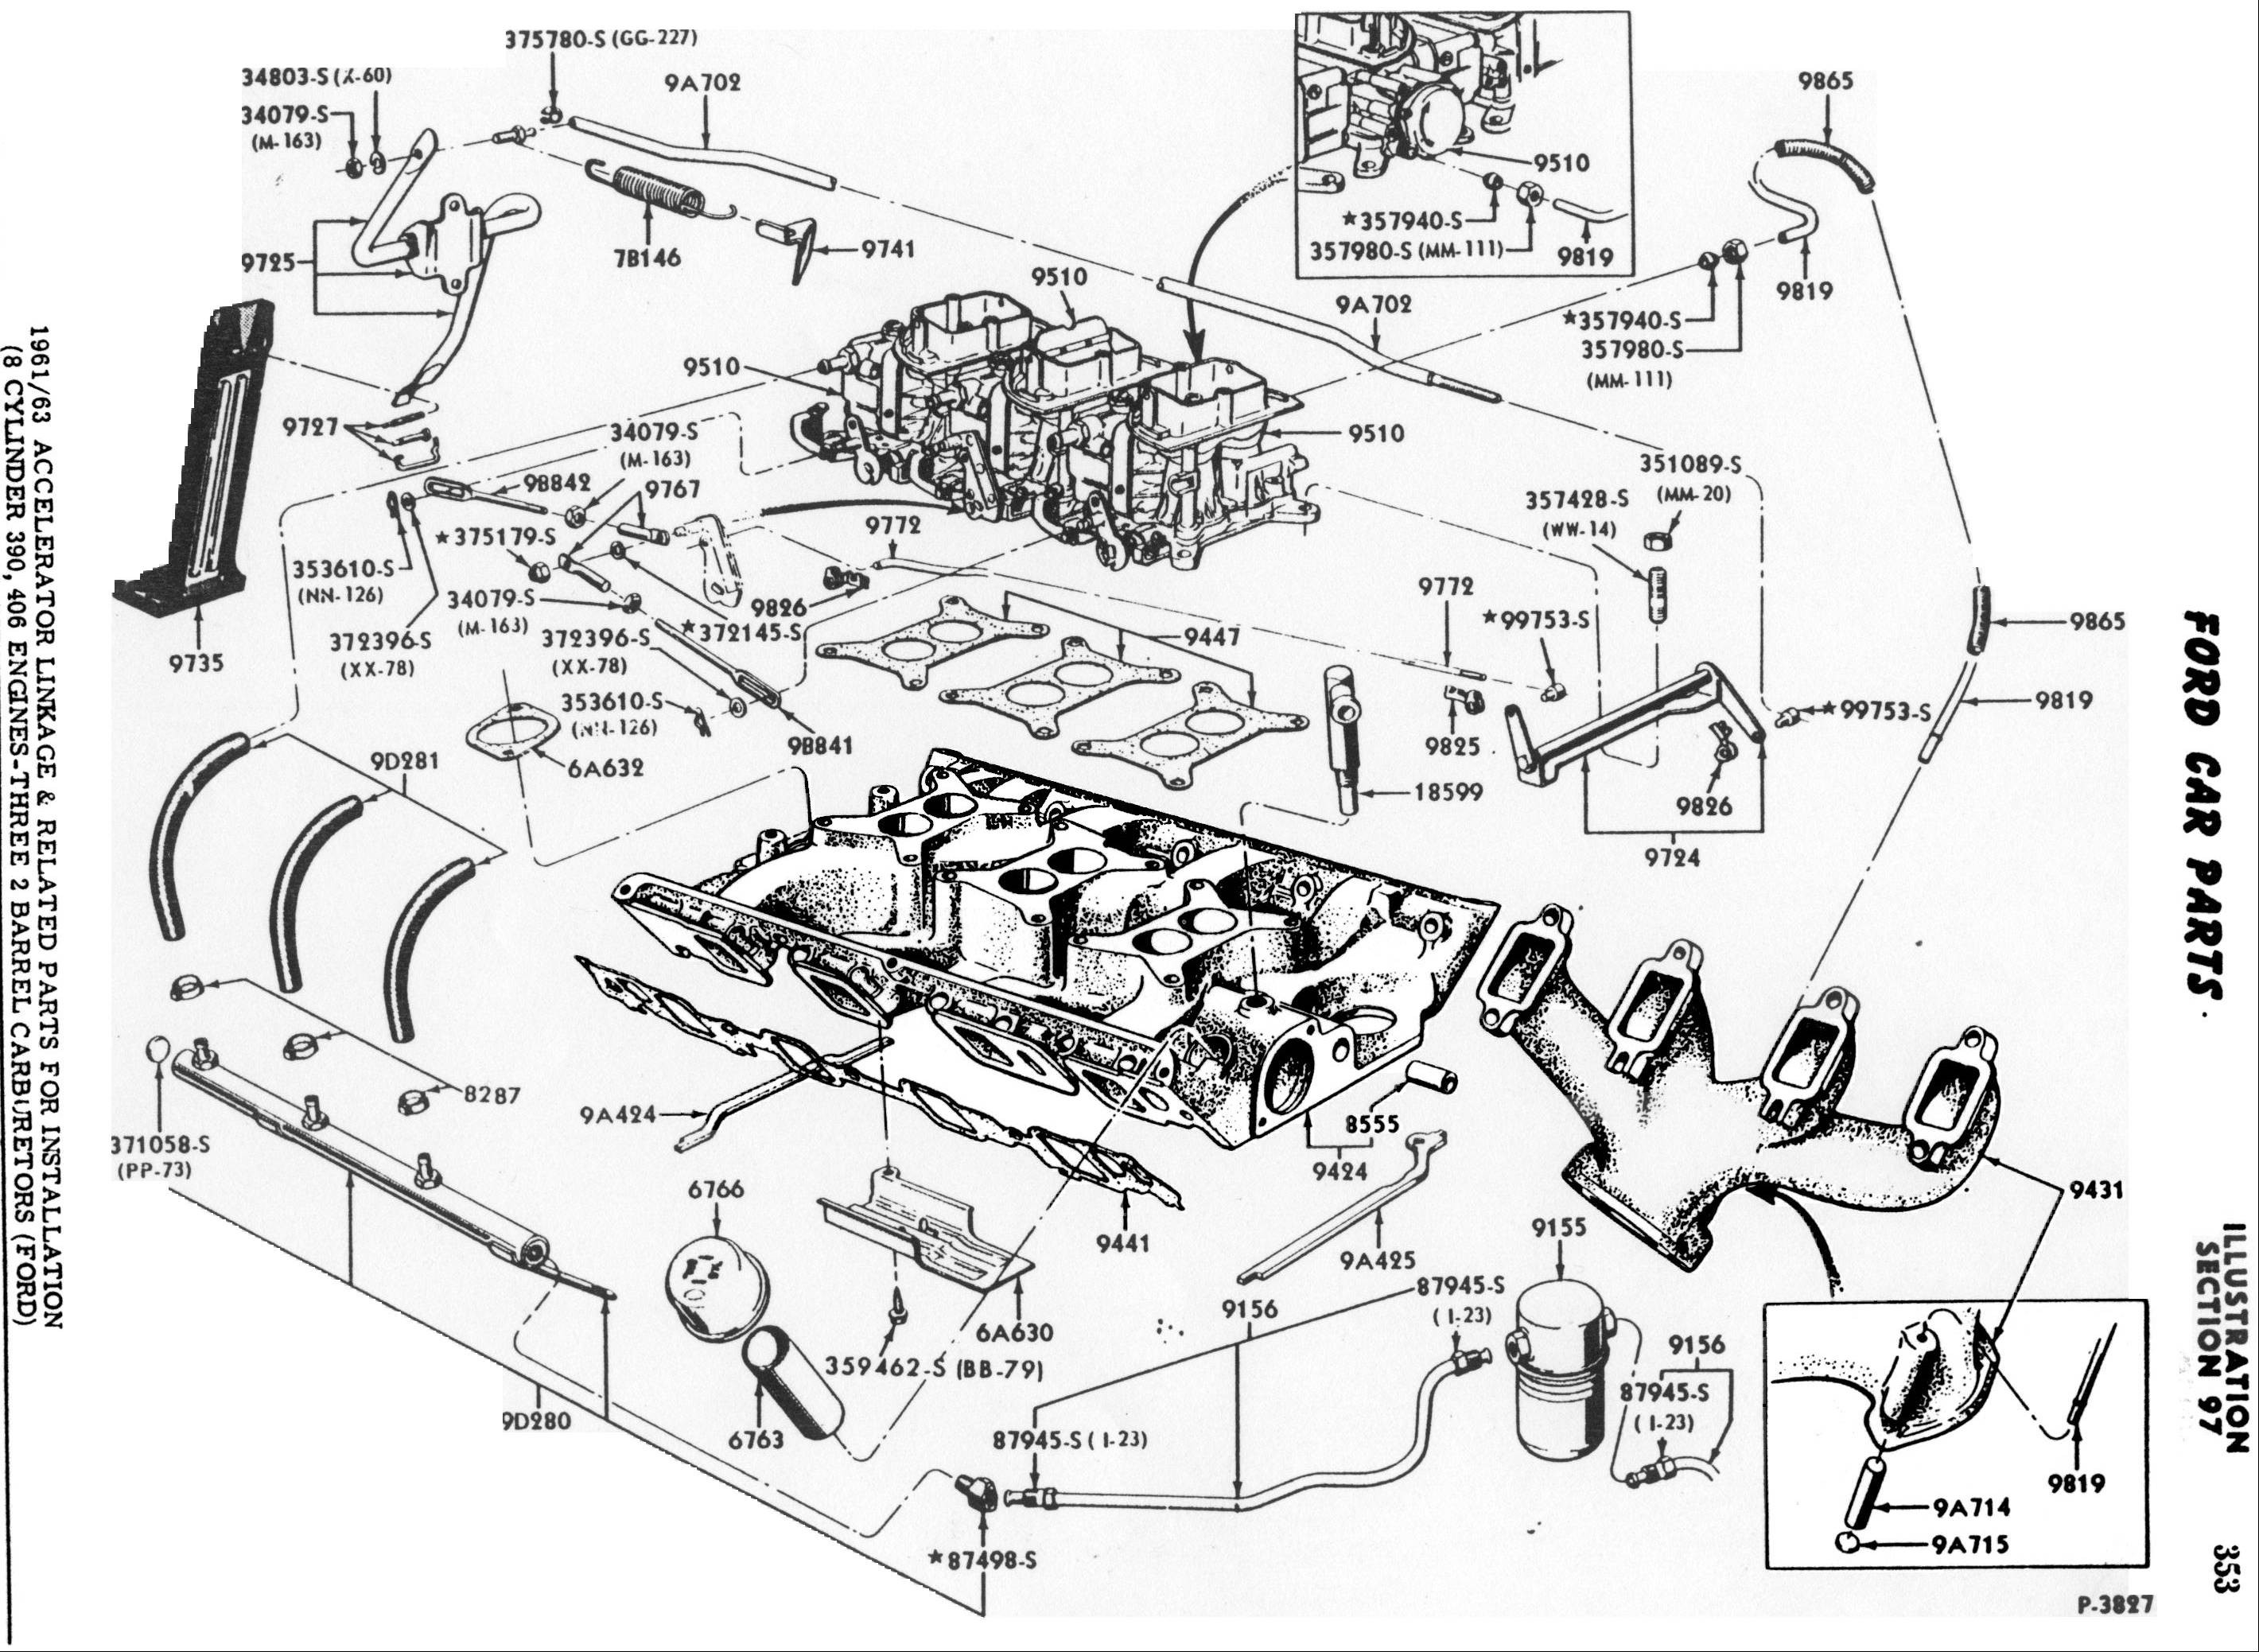 1934 Dodge Wiring Diagrams 2006 Charger Engine Diagram 460 Ford Info Of